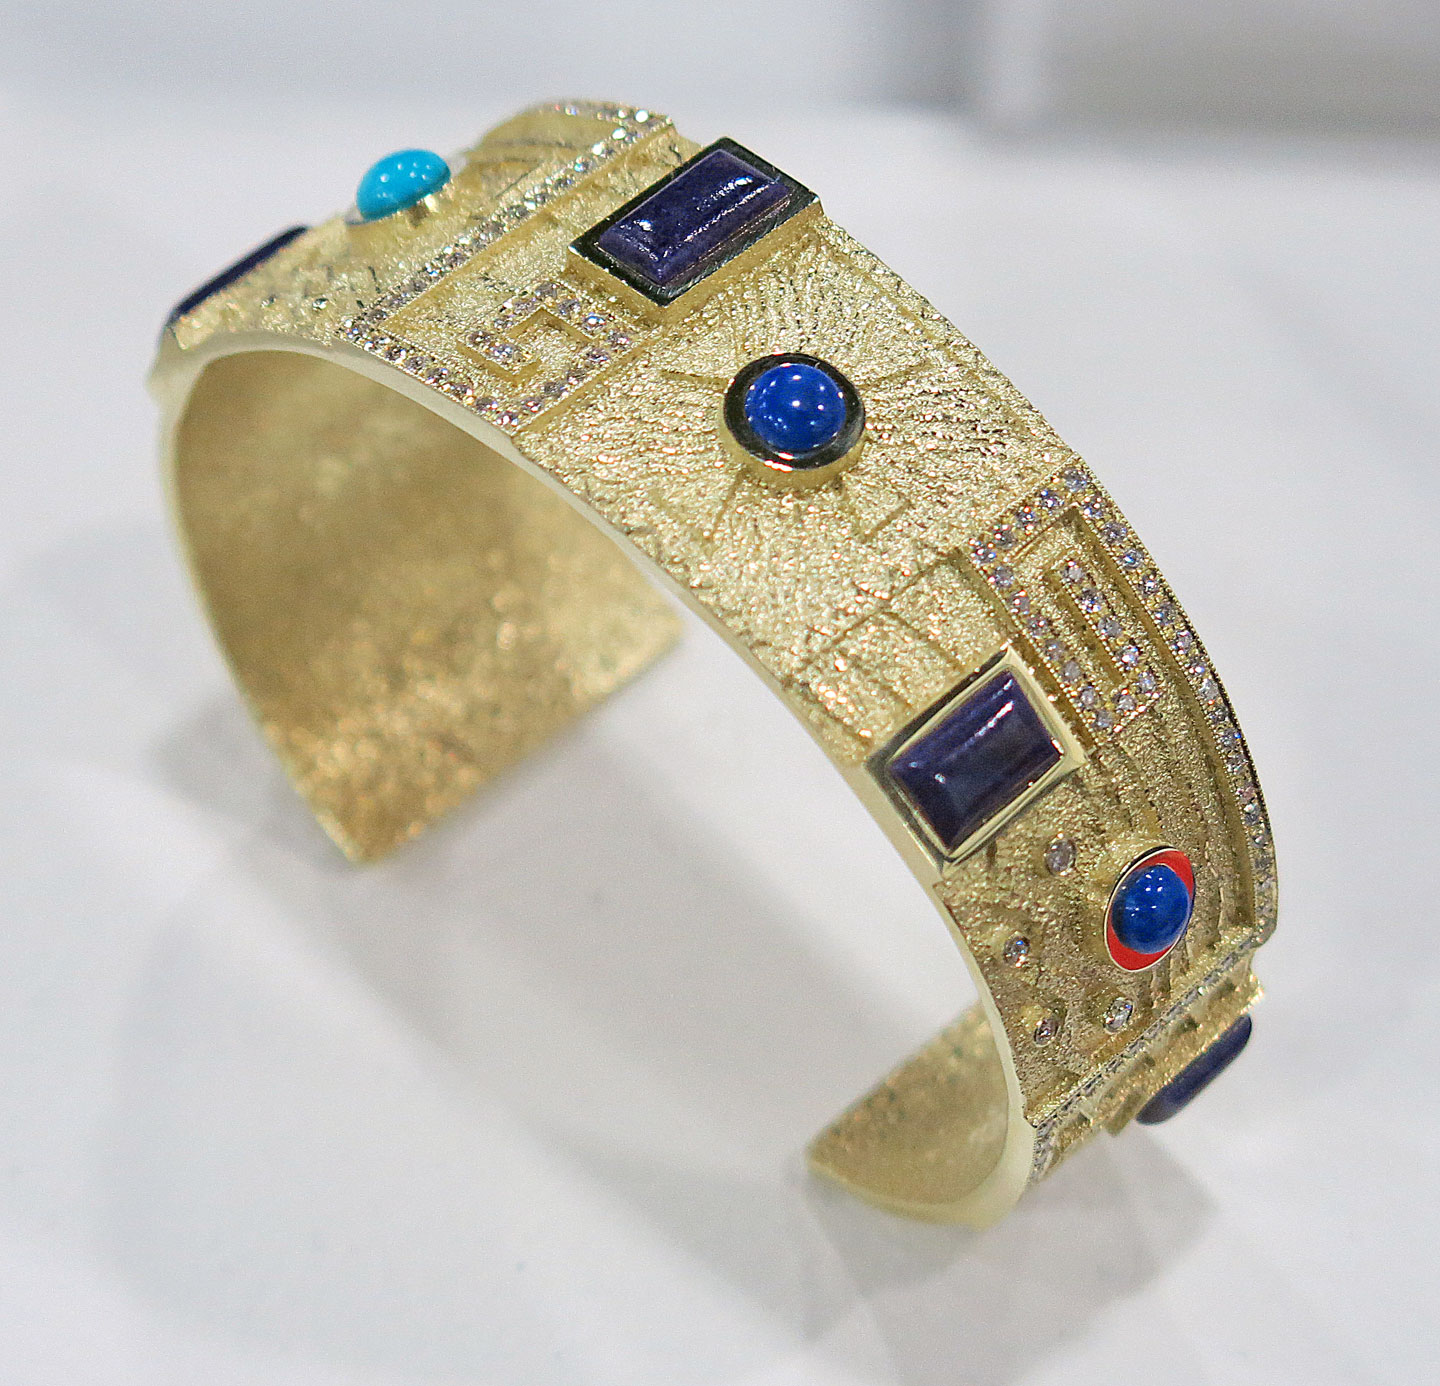 BRACELET by Ric Charlie (Diné), who won First Place in the Jewelry and Lapidary C category for his suite of bracelet, earrings and necklace. Diamonds are set into the rectangular spirals.